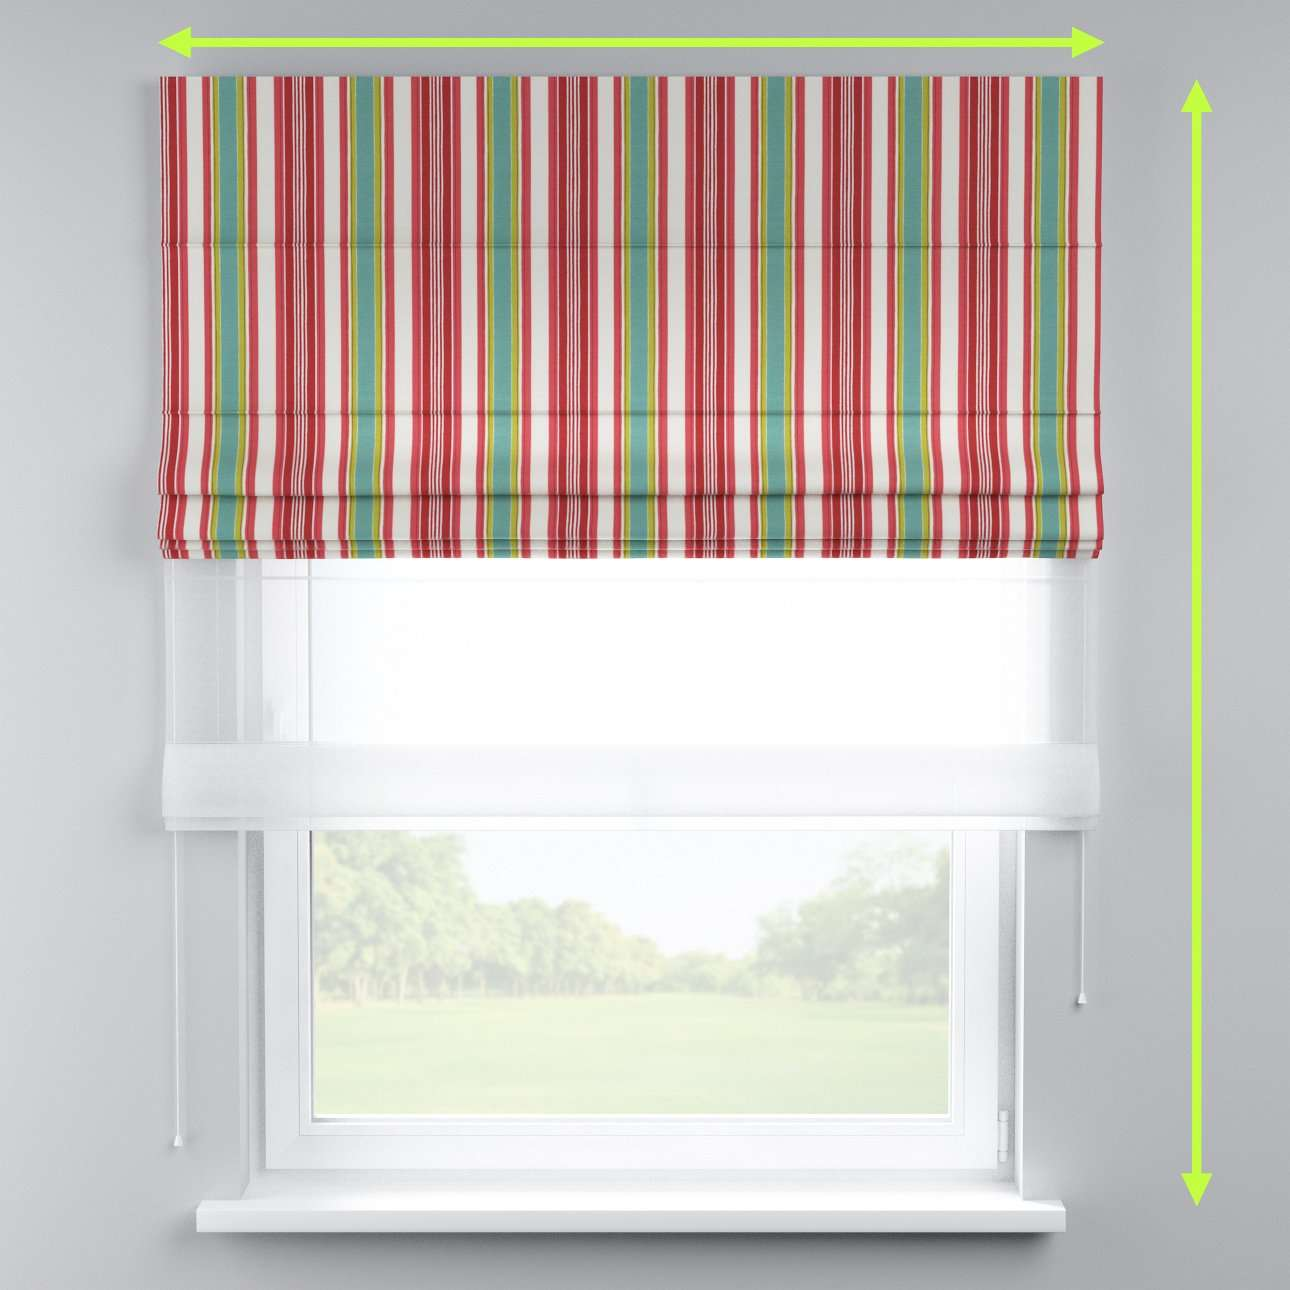 Voile and fabric roman blind (DUO II) in collection Londres, fabric: 122-01